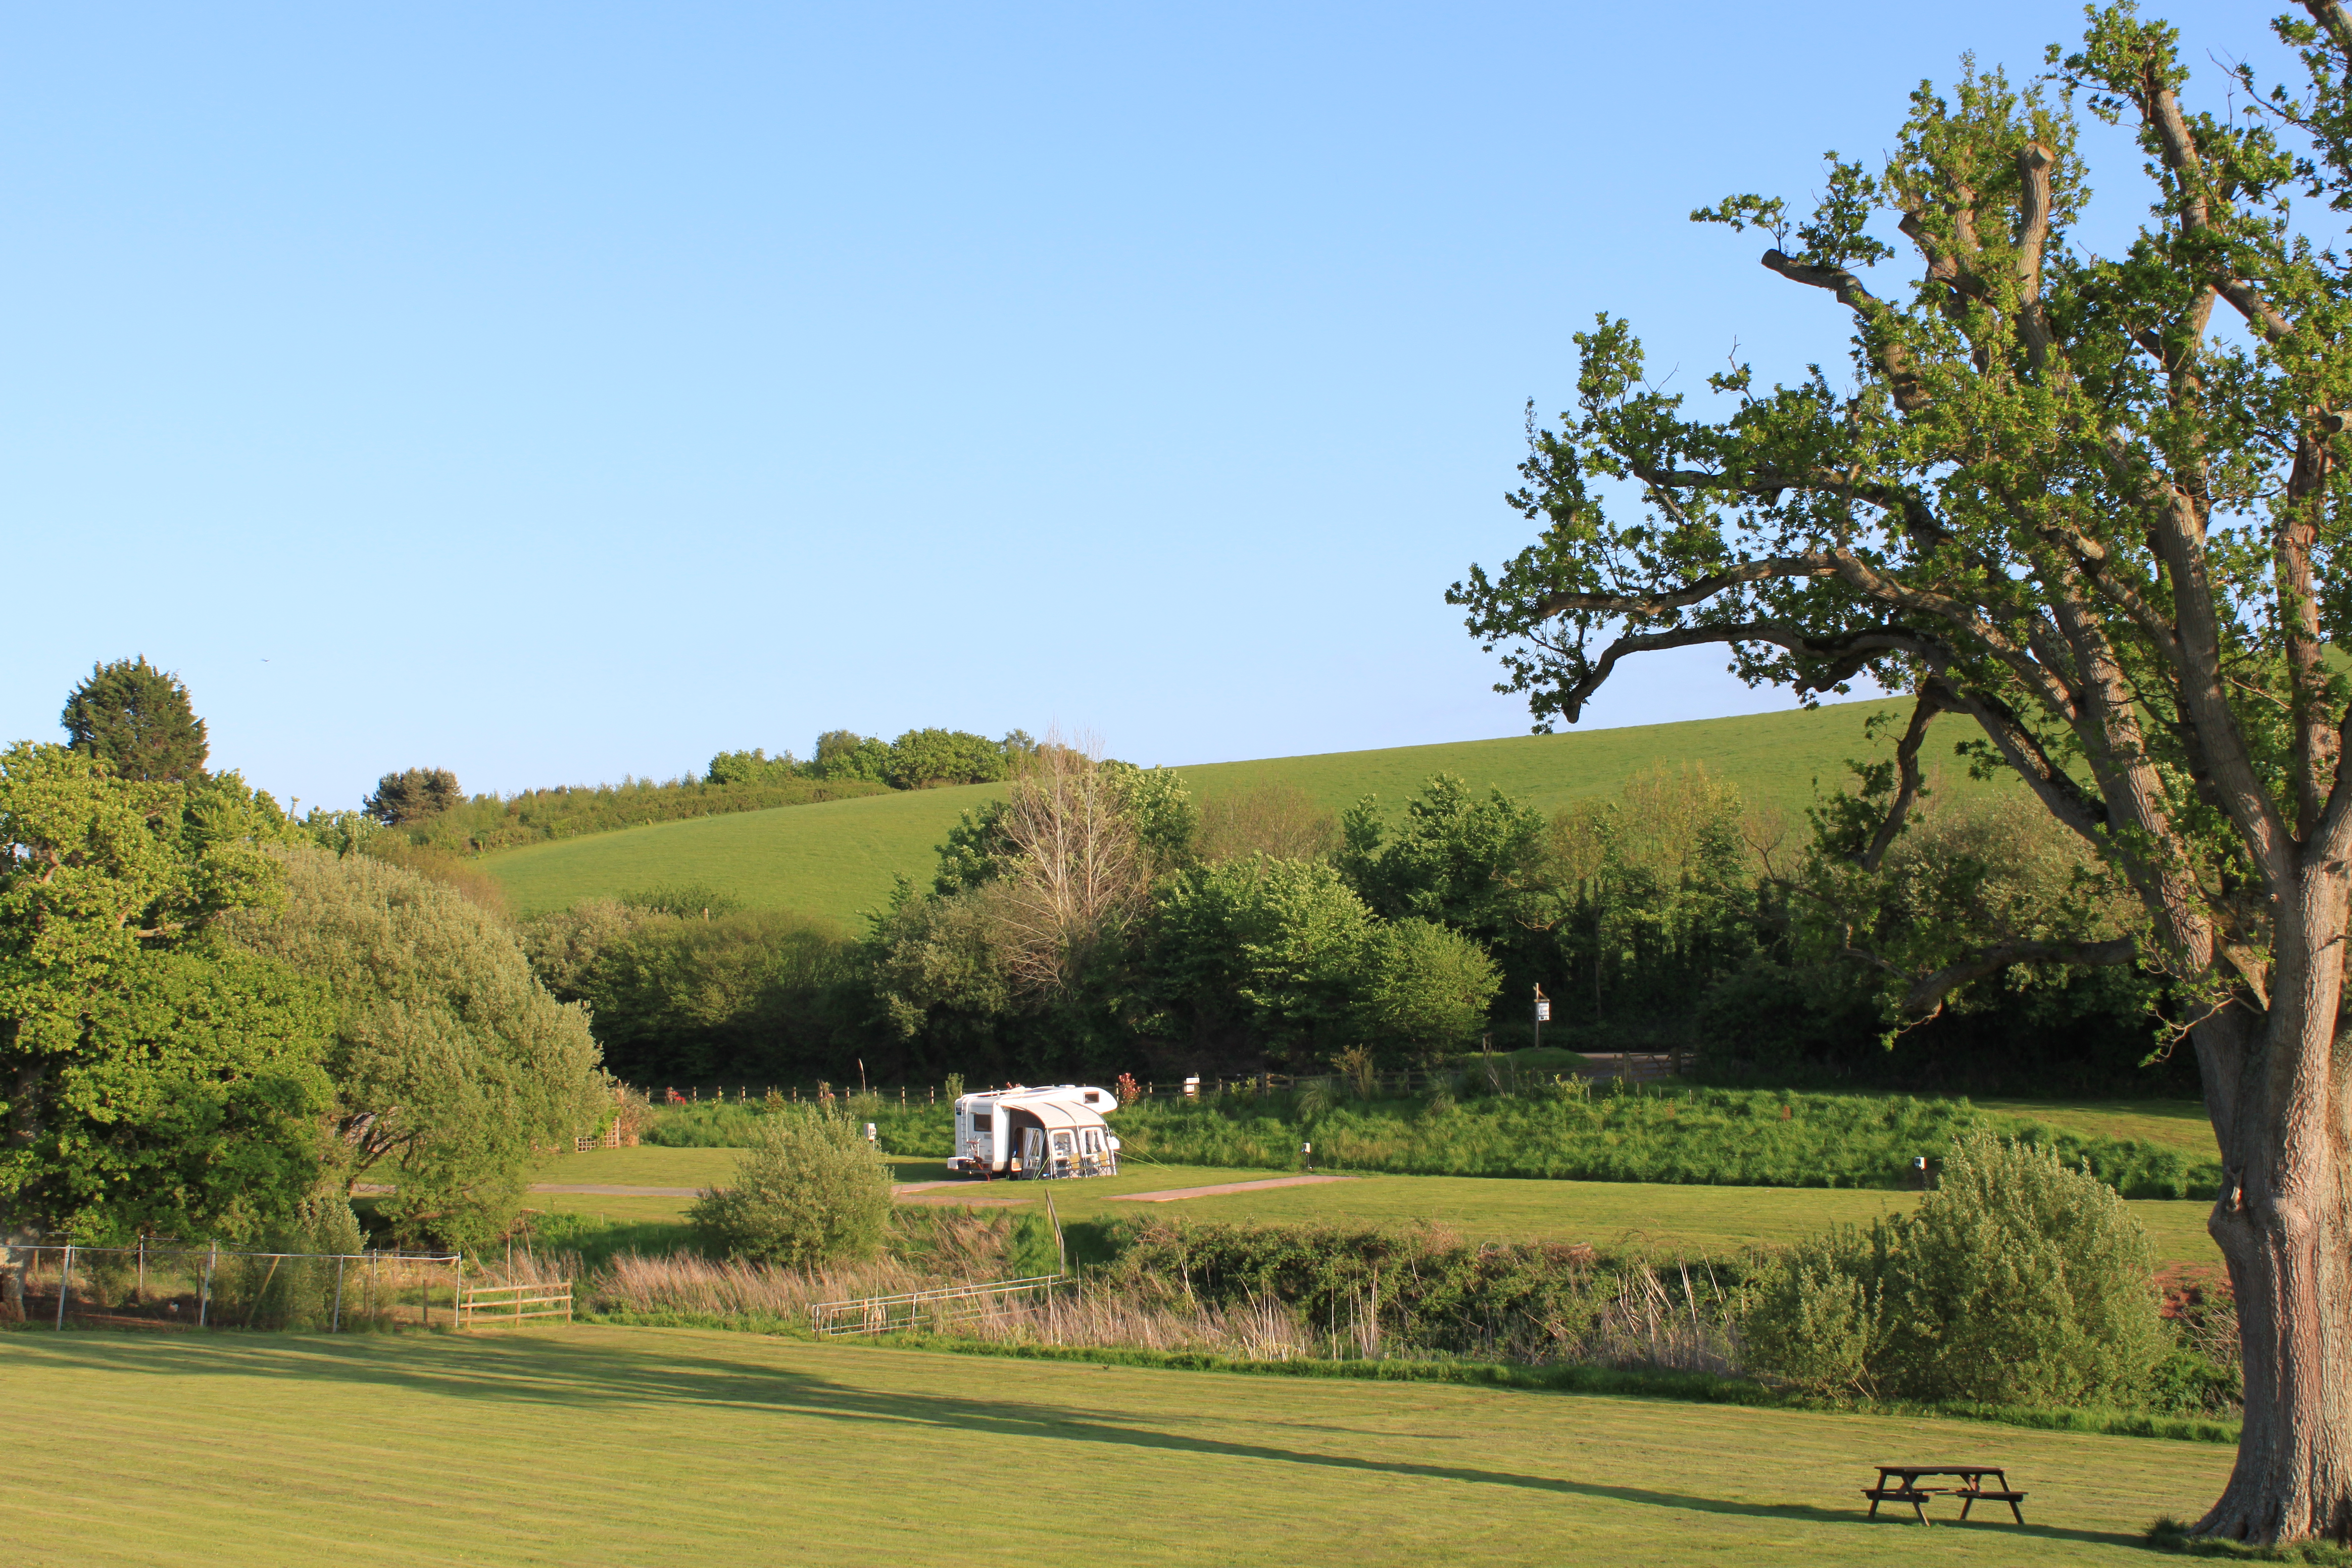 Hunters Lodge Caravan Camping Site motorhome pitch hardstanding awning wildlife countryside birdwatching